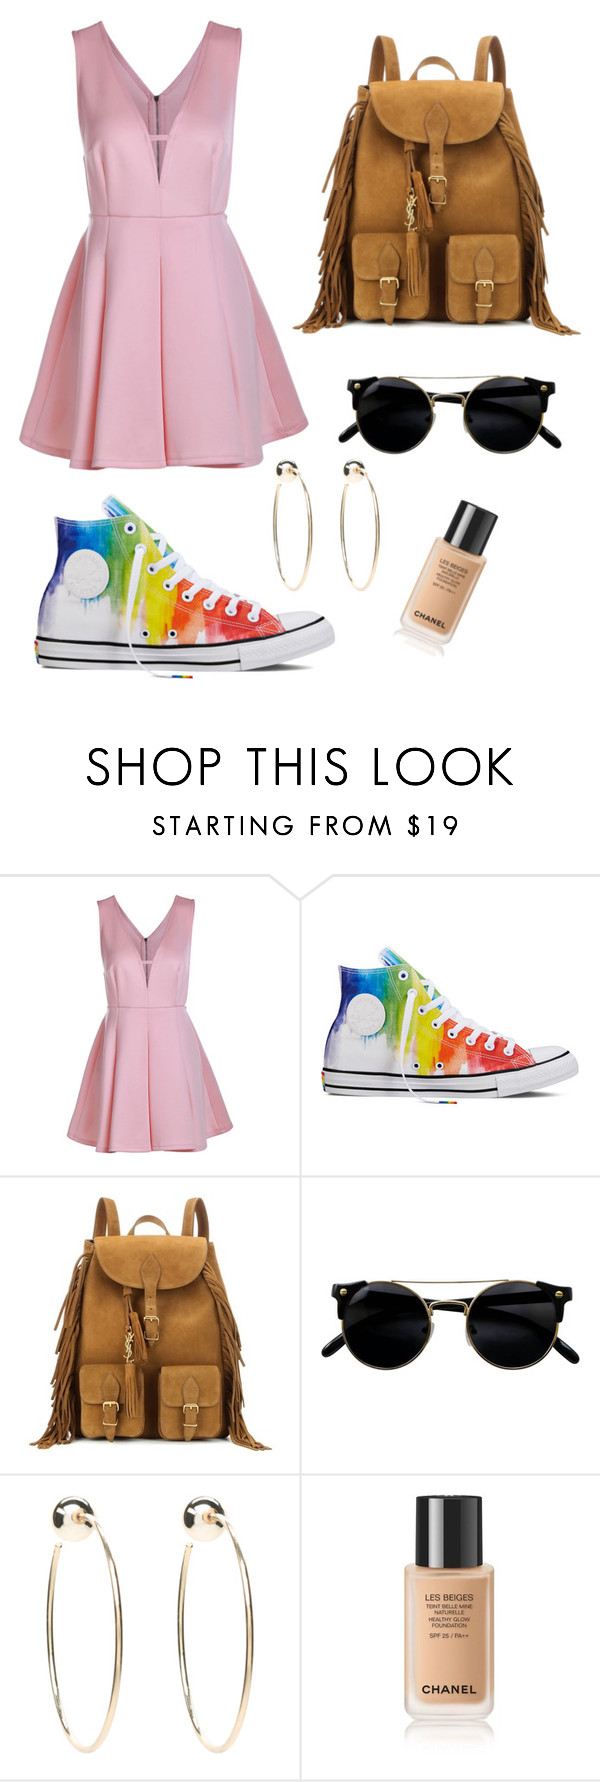 """""""Plane ride back"""" by sydney0325 ❤ liked on Polyvore featuring beauty, Converse, Yves Saint Laurent and Bebe"""